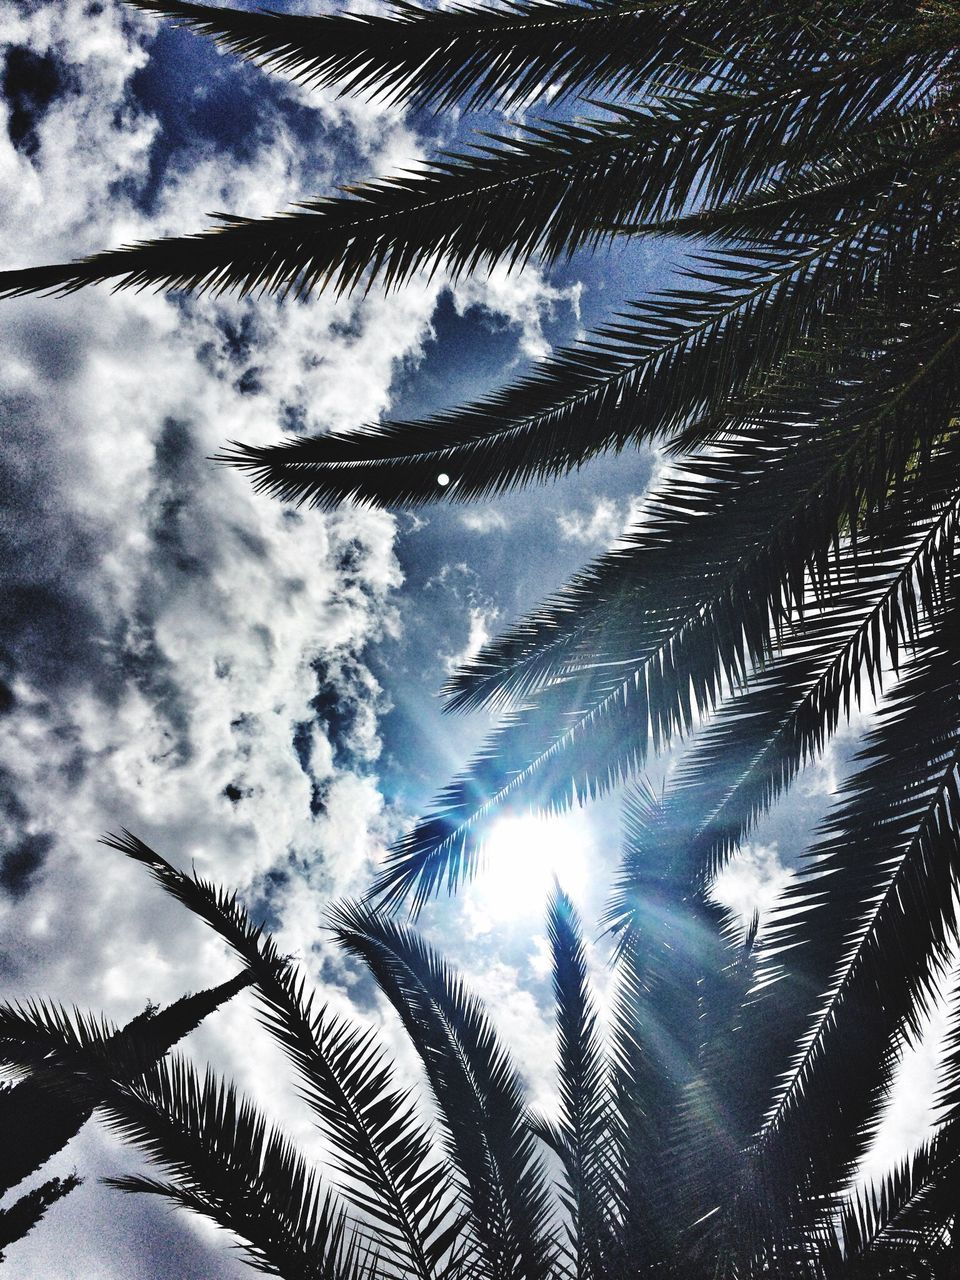 low angle view, nature, beauty in nature, growth, palm tree, sky, tranquility, no people, day, outdoors, scenics, tree